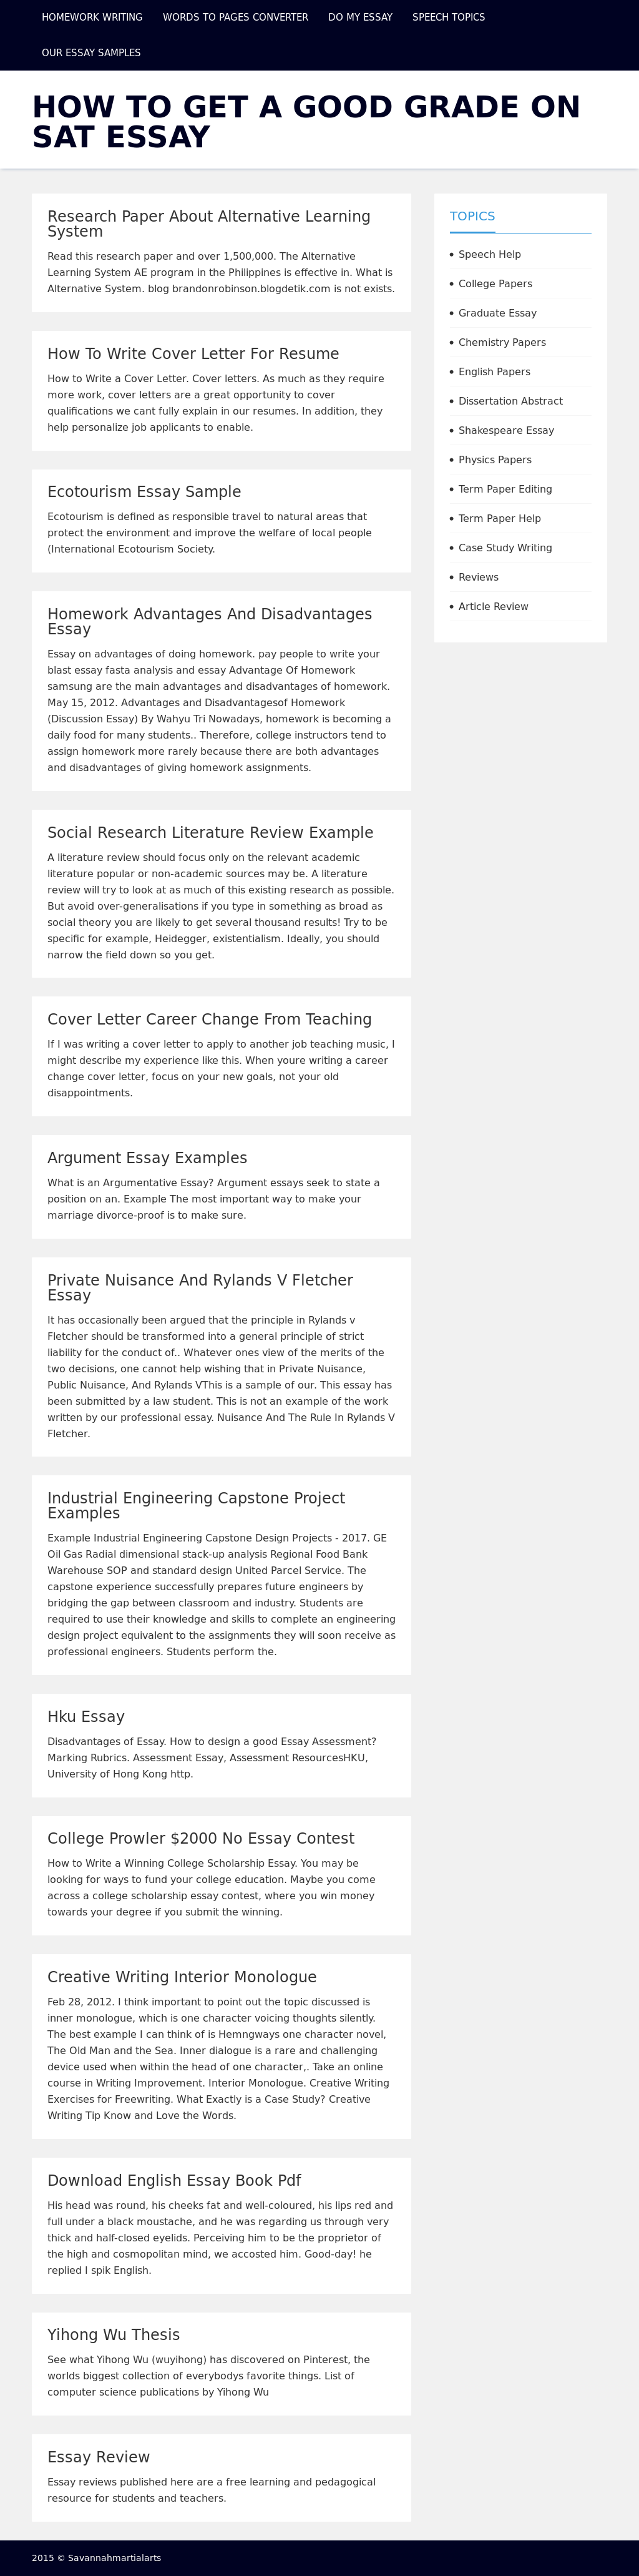 Cheap cover letter editing website for phd